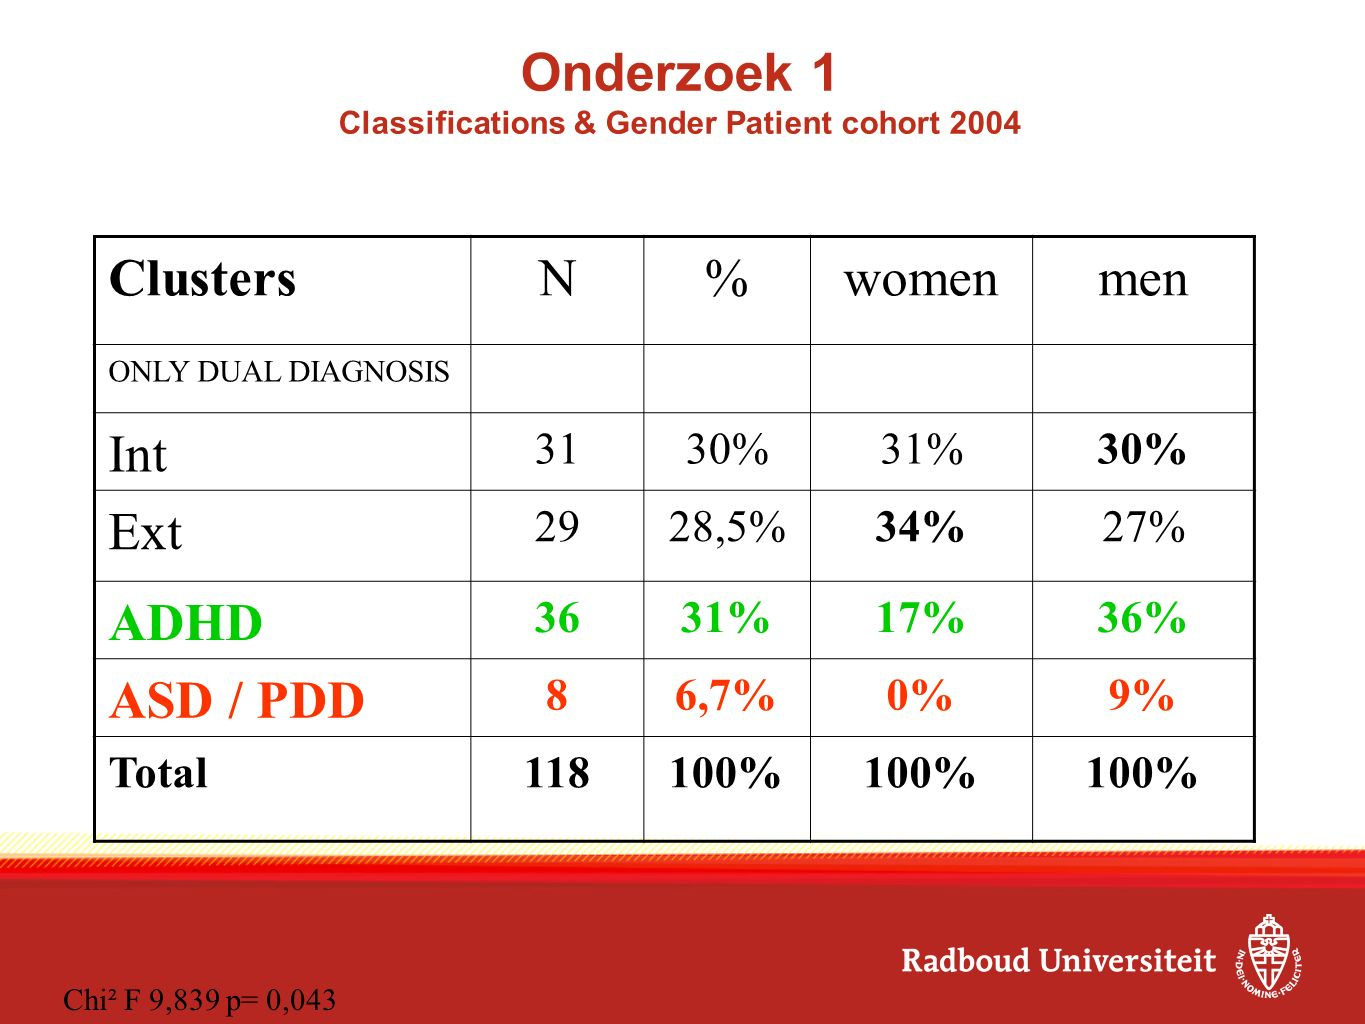 Onderzoek 1 Classifications & Gender Patient cohort 2004